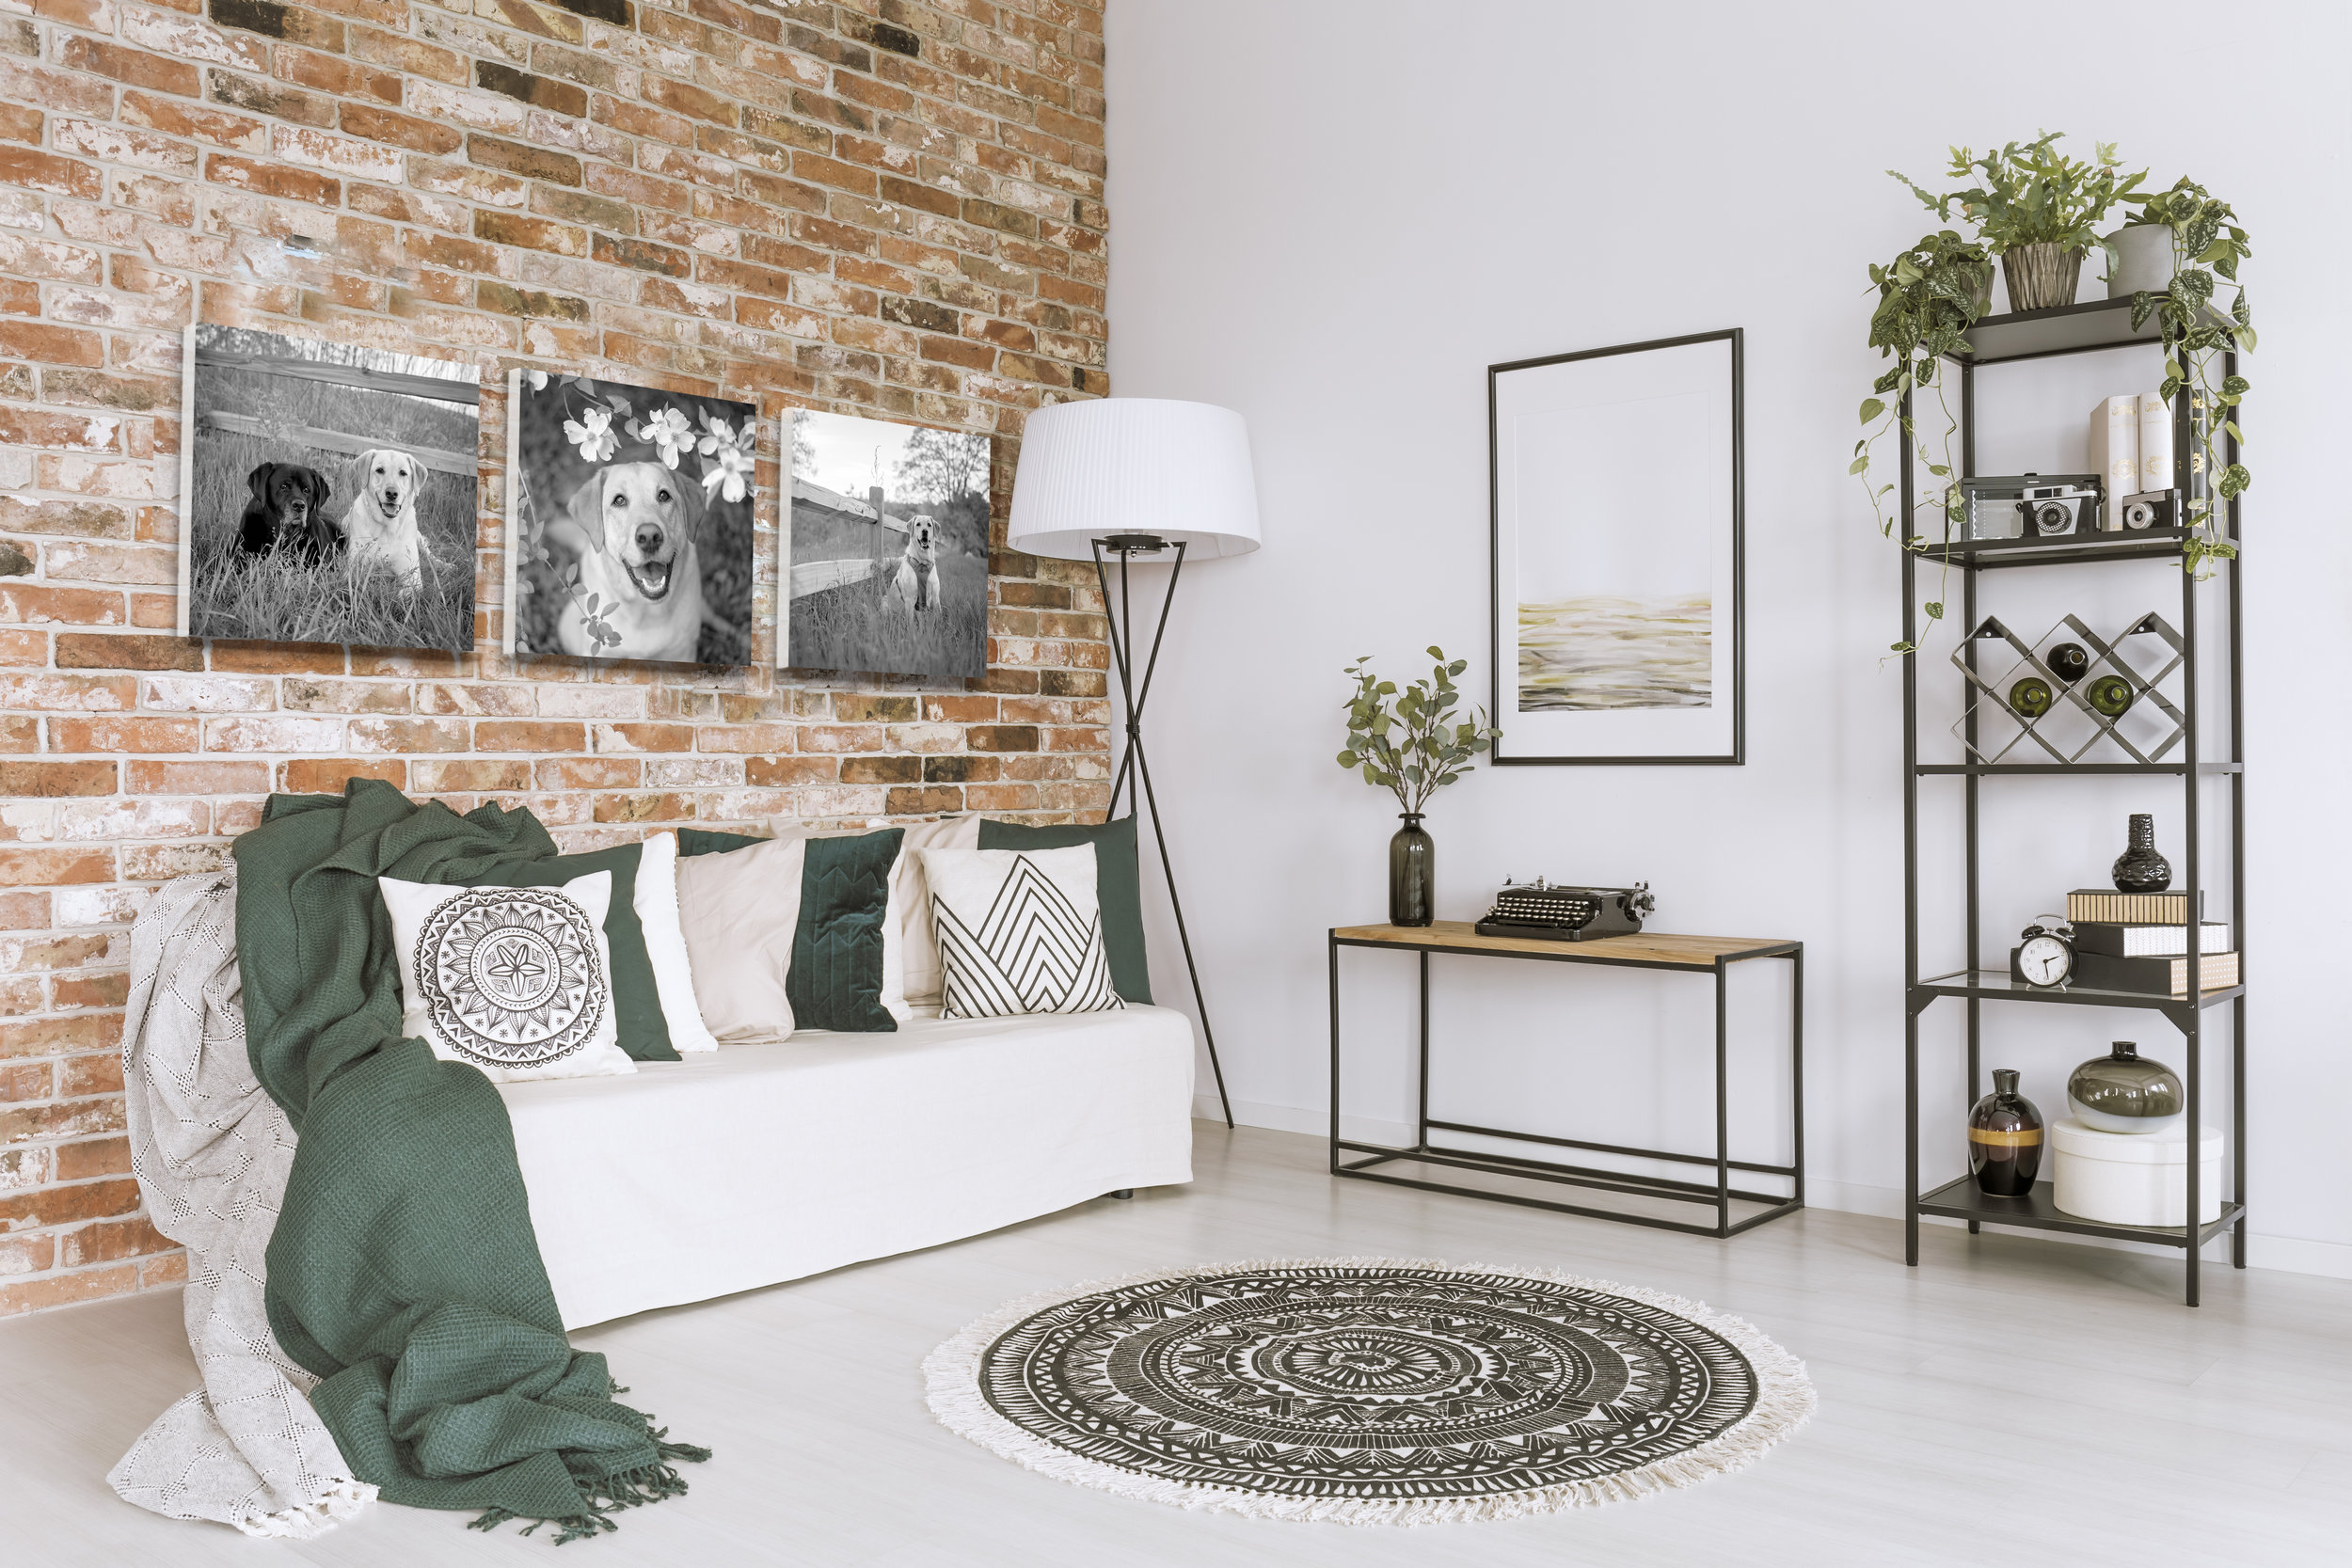 A HOUSE BECOMES A HOME - When there is photography on the walls...